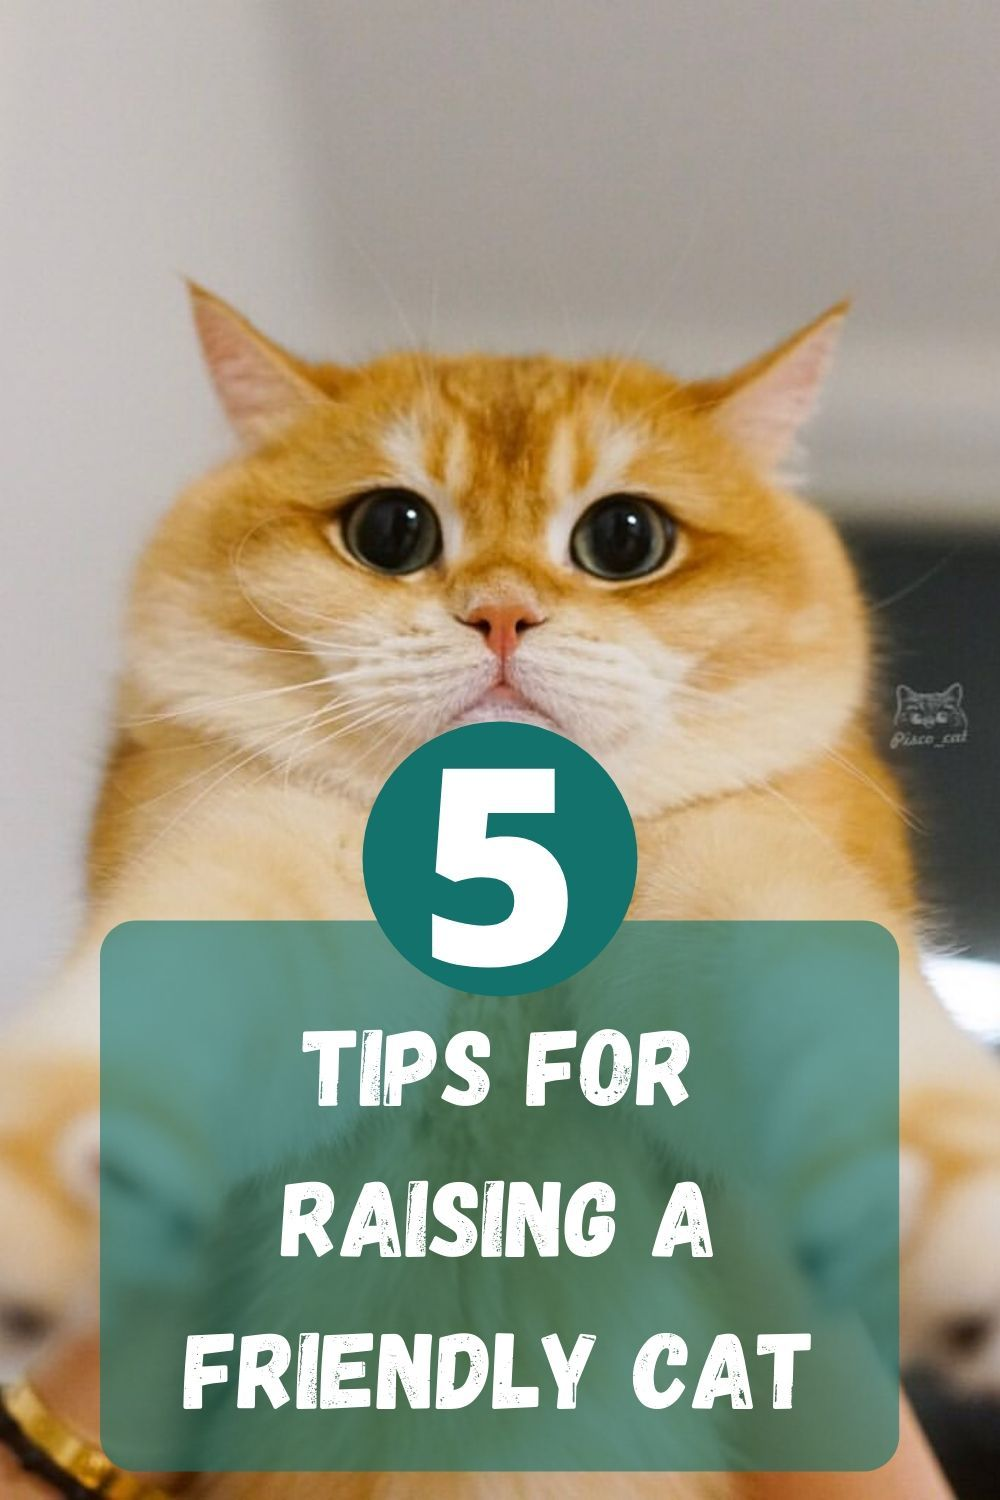 5 Tips For Raising A Friendly Cat Welfar4us In 2020 Cute Cats And Dogs Cute Baby Cats Baby Cats